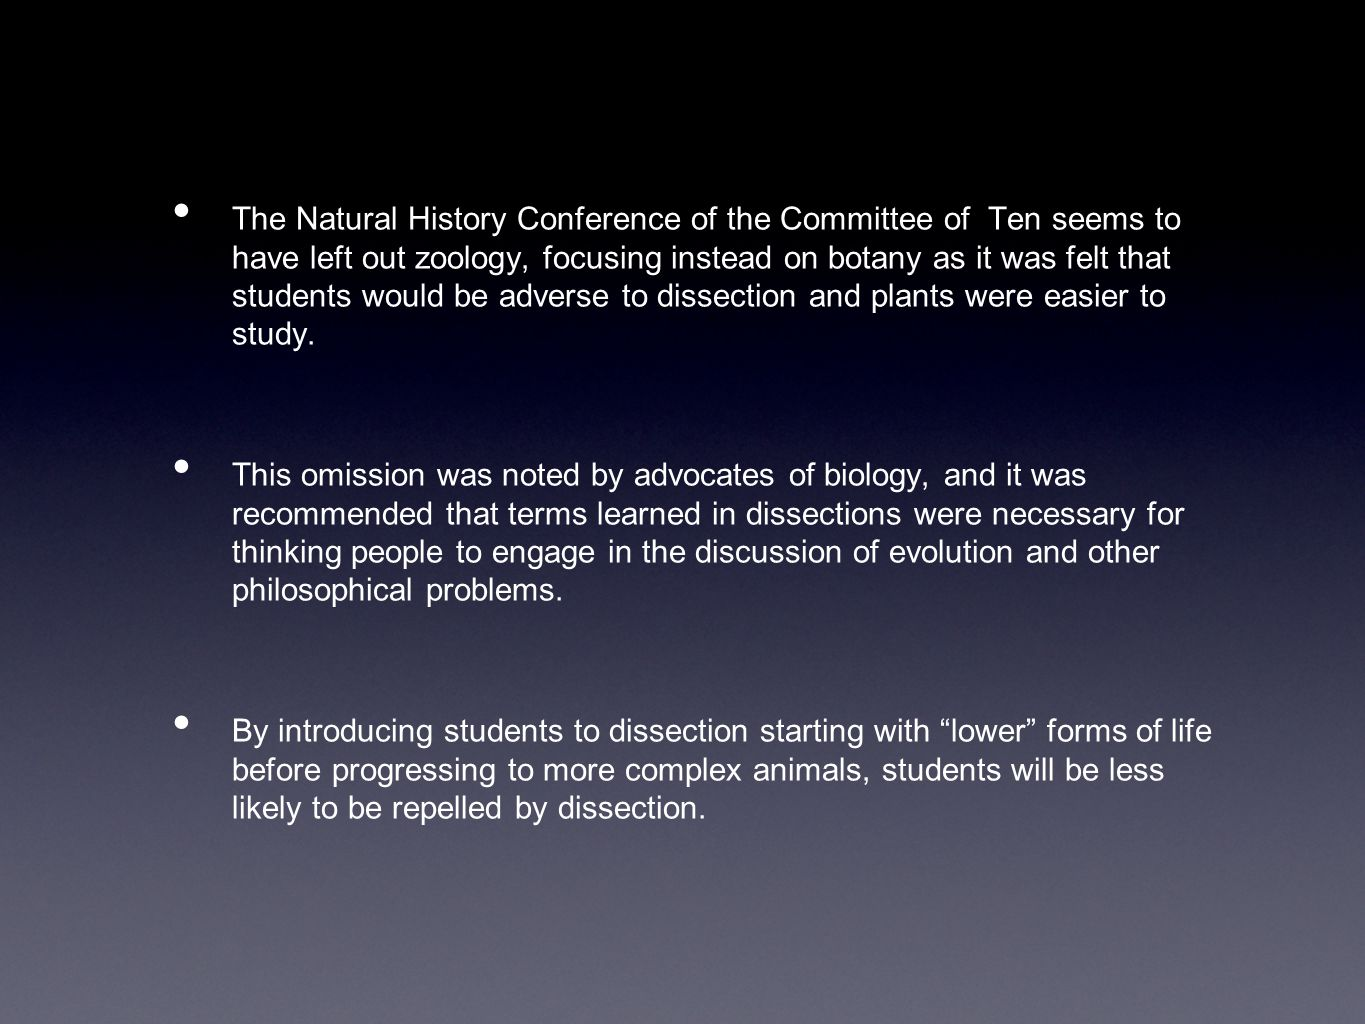 The Natural History Conference of the Committee of Ten seems to have left out zoology, focusing instead on botany as it was felt that students would be adverse to dissection and plants were easier to study.